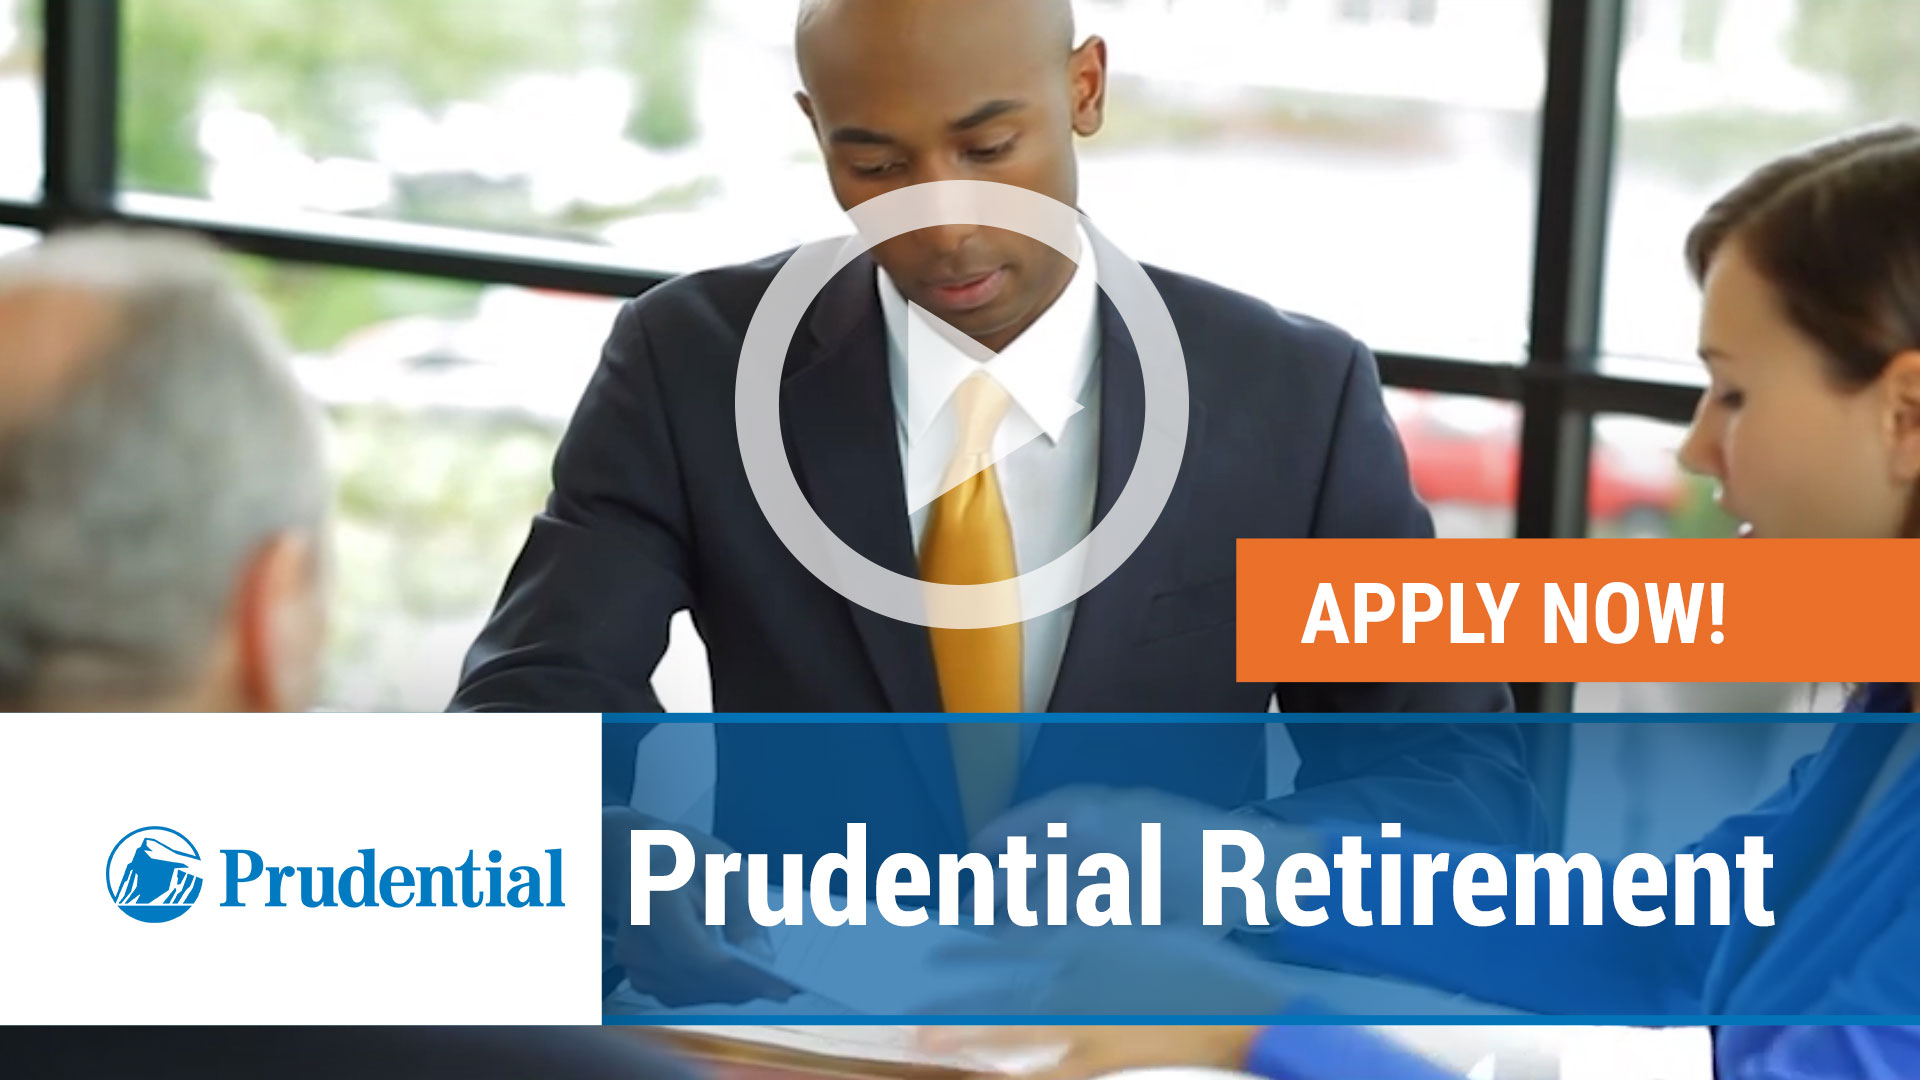 Watch our careers video for available job opening Prudential Retirement in TBD, TBD